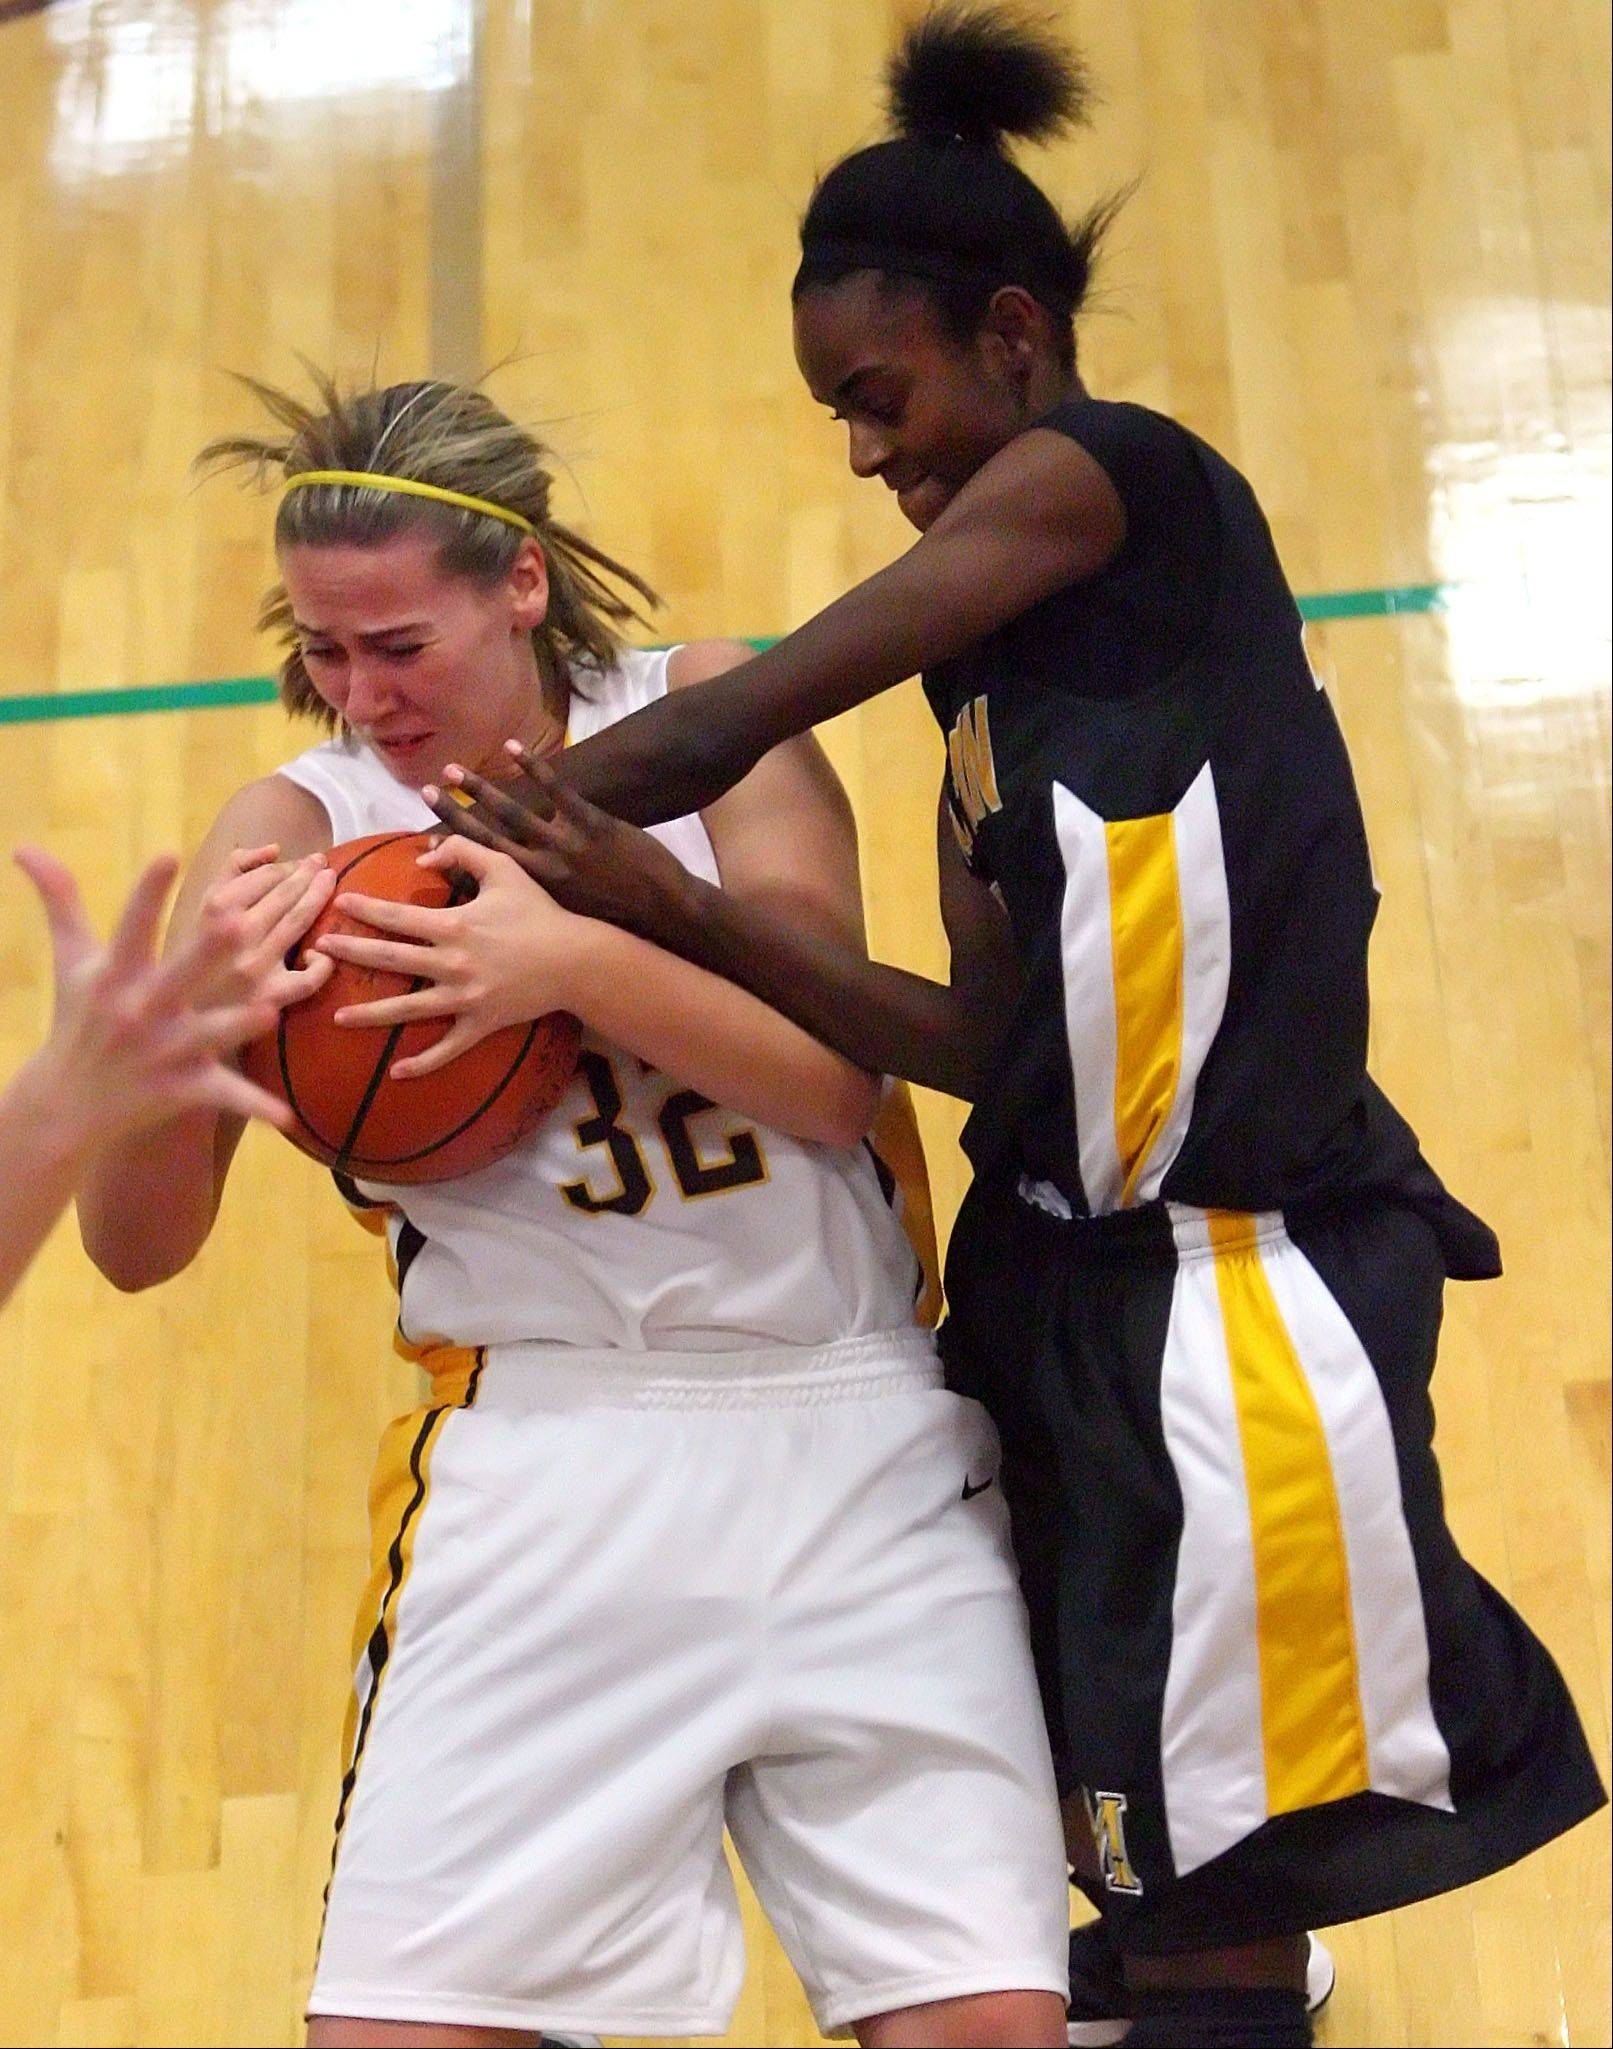 Carmel Catholic's Emma Rappe, left, battles for a rebound with Marian Catholic's Kauai Bradley on Wednesday night at Carmel Catholic.